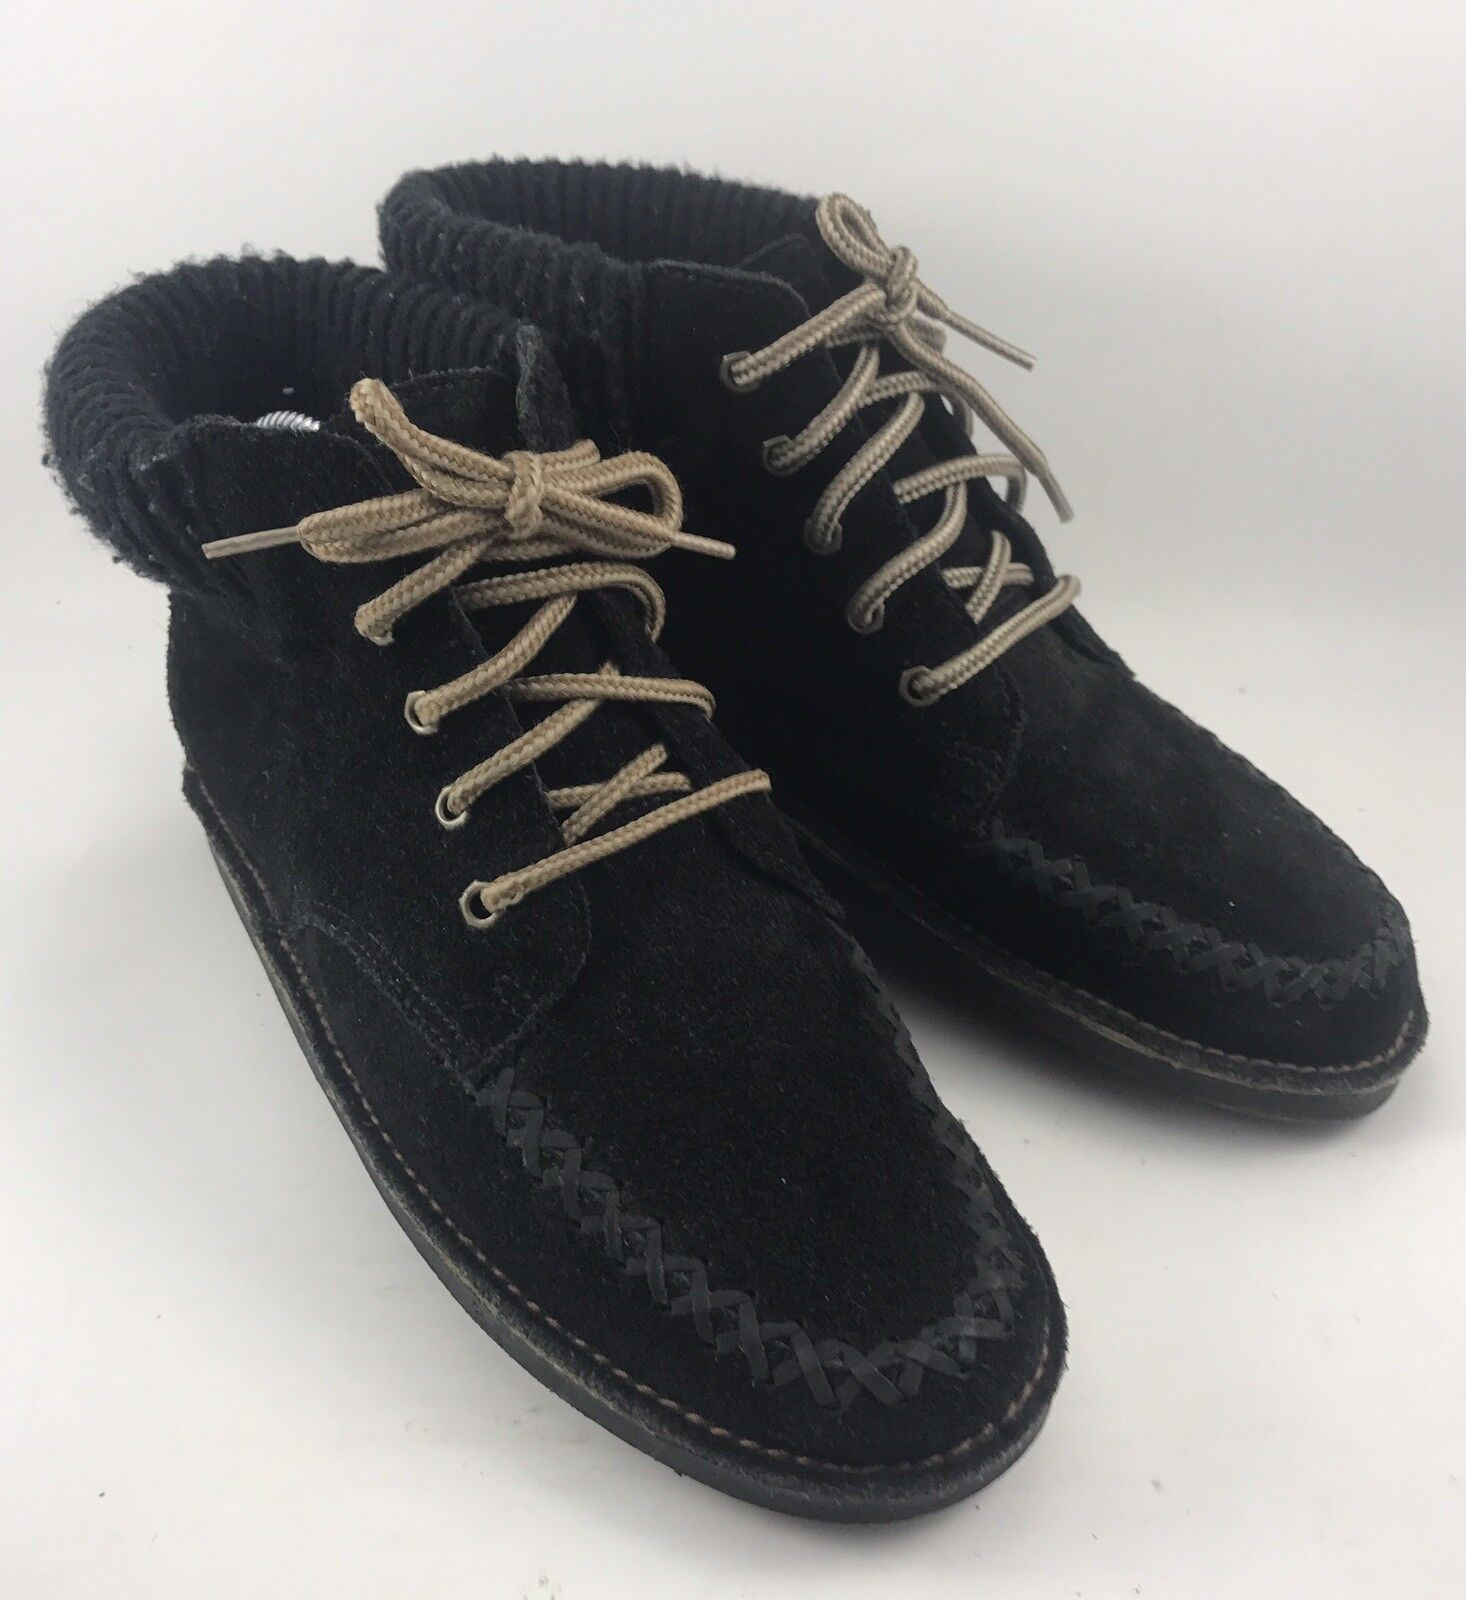 Unlisted Consoles 32057 Womens Size 7.5M Black Suede Leather Moc Ankle Boots-546